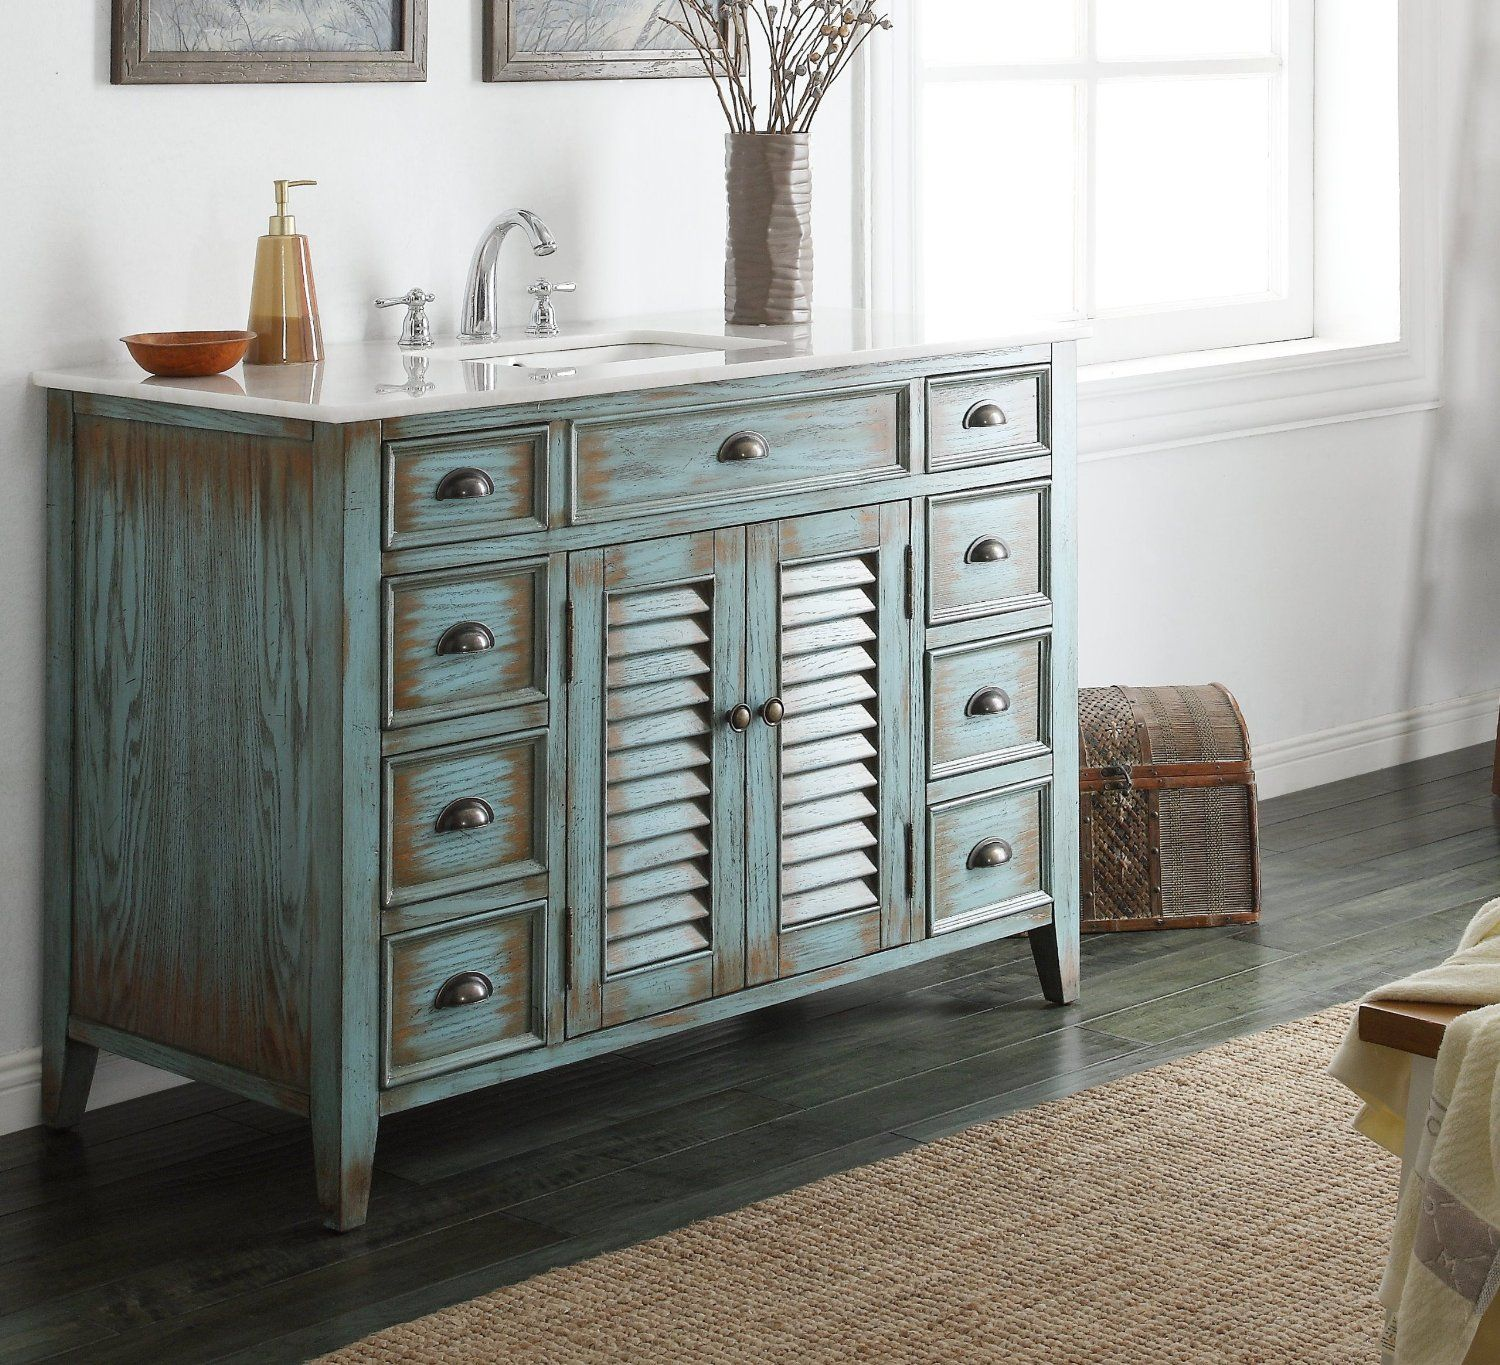 25 rustic bathroom vanities to make your bathroom look for Looking for bathroom vanities